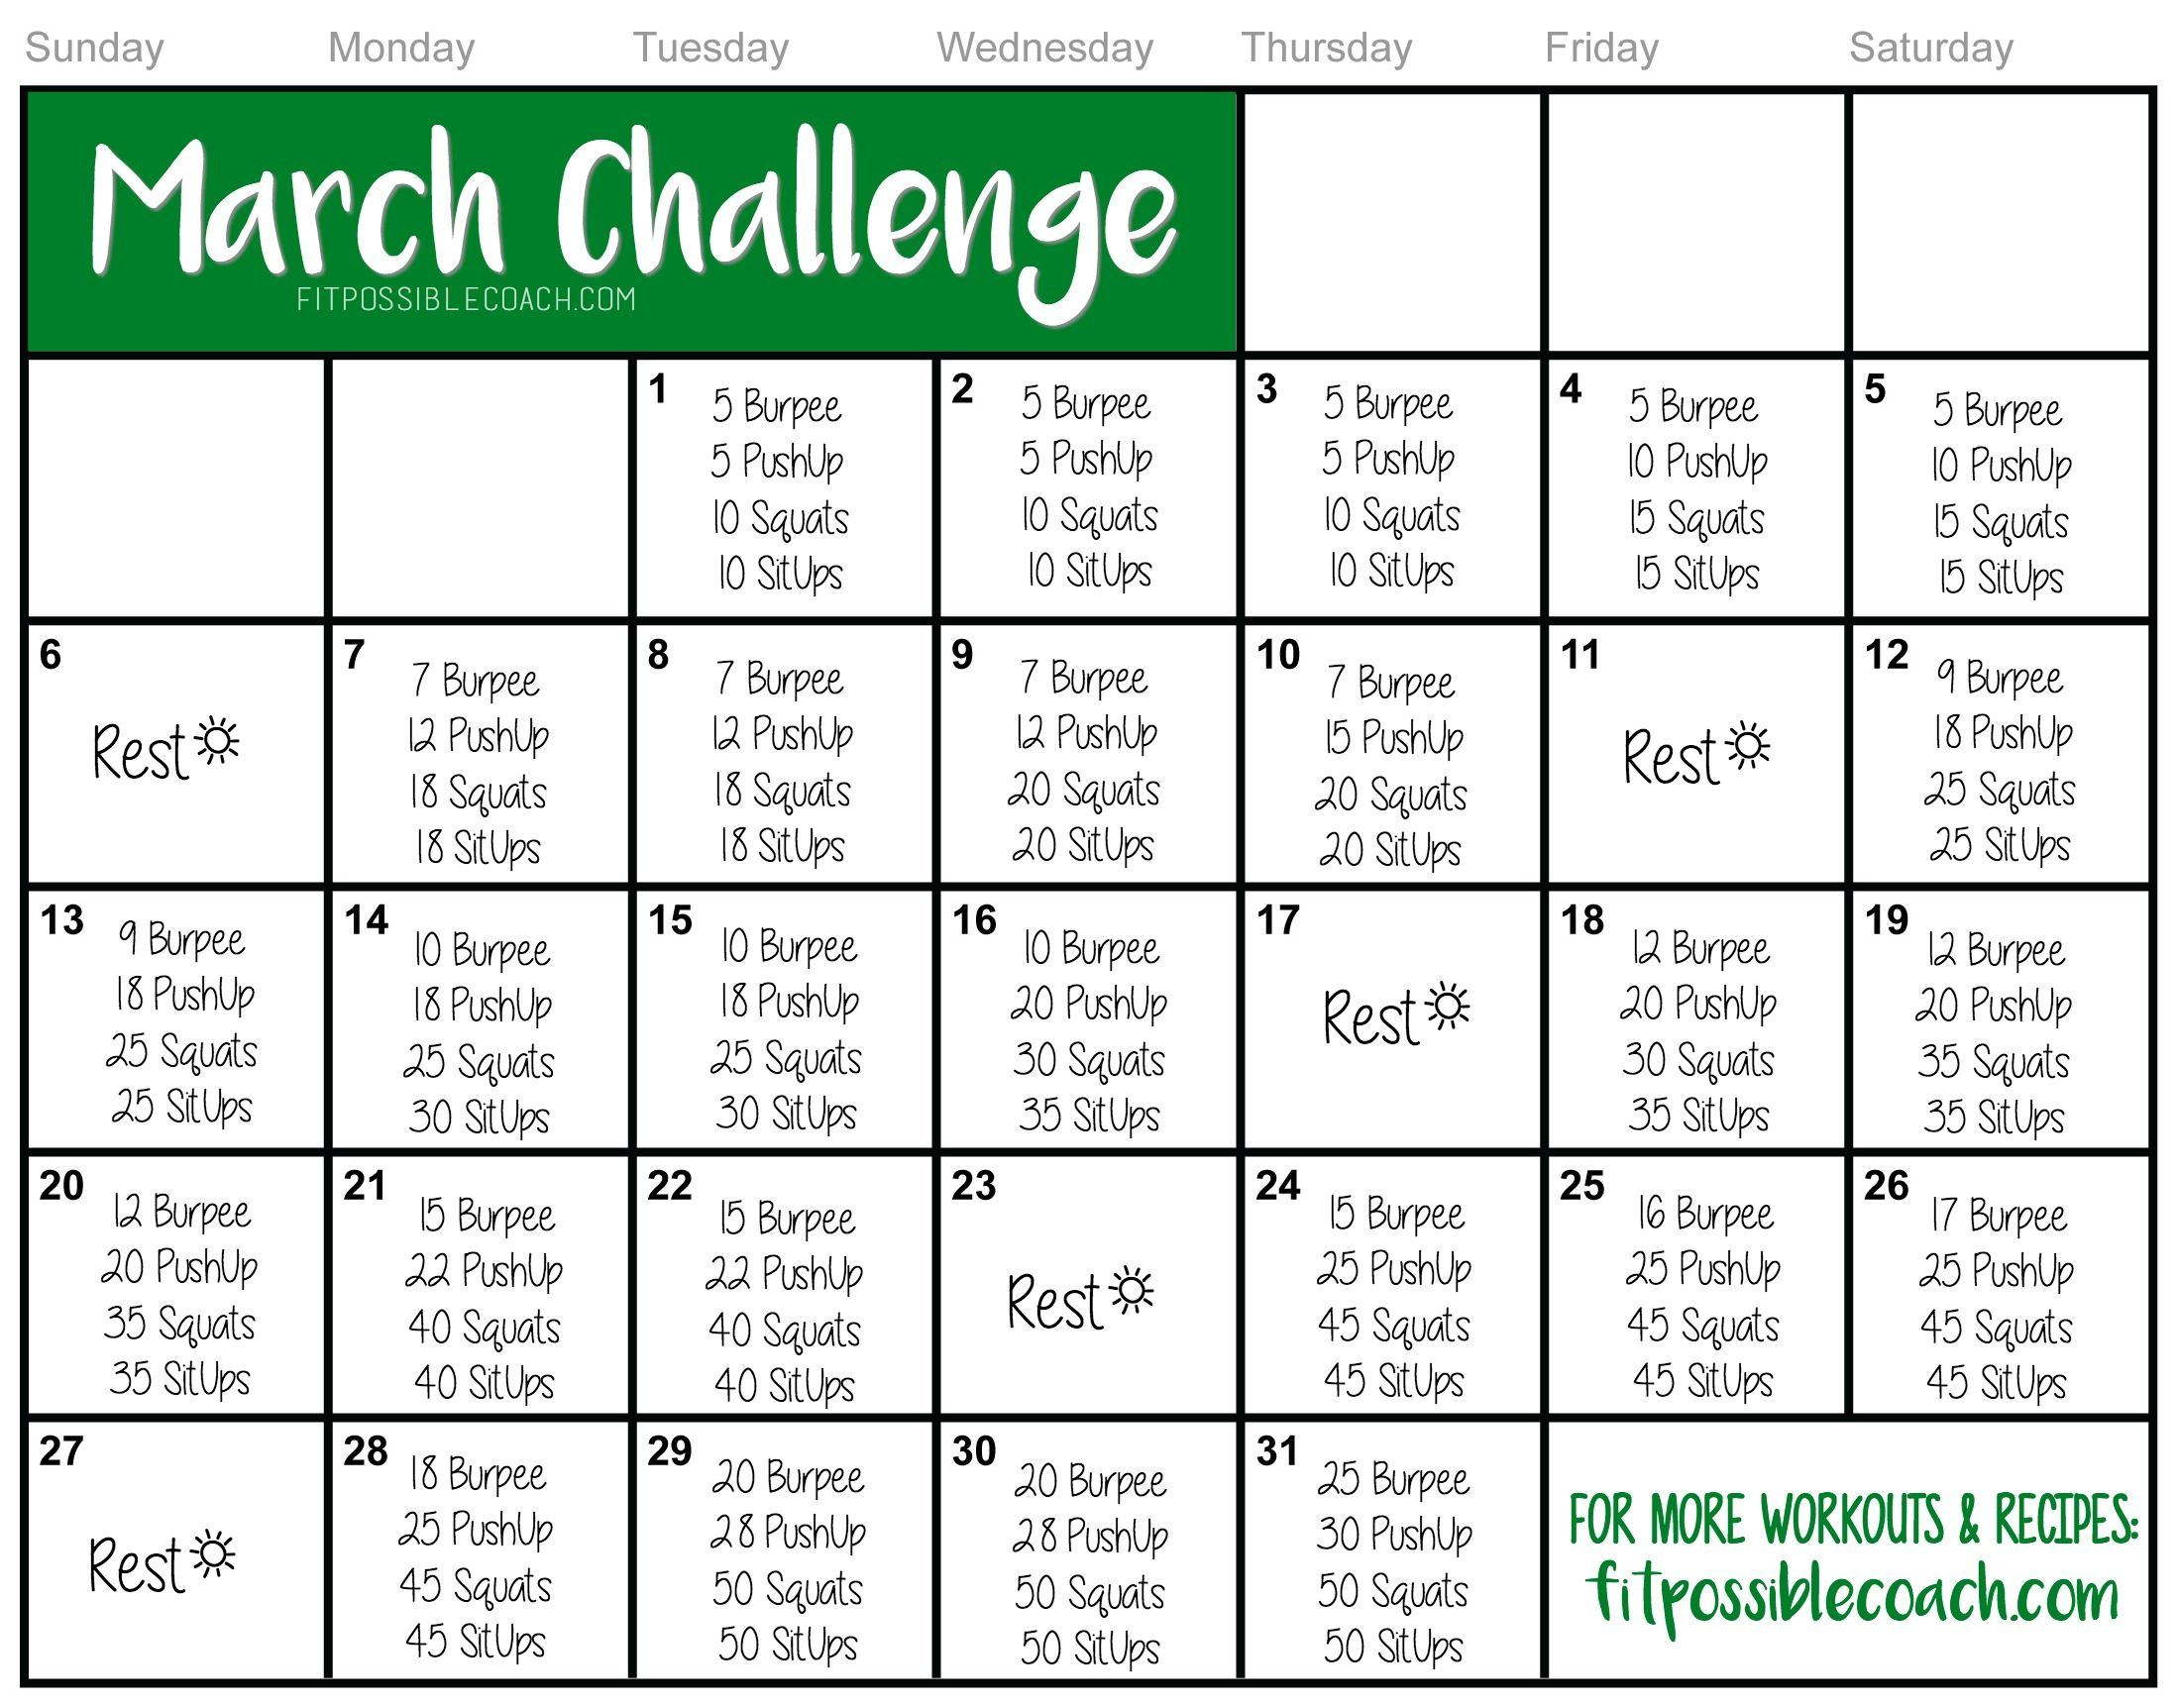 MARCH FITNESS CHALLENGE!!! ARE YOU UP FOR THE CHALLENGE? . Comment below 'I'M DOING IT' and then SHARE this on your wall to save it and invite others to do this too! Make sure you print it or save it to your phone/computer so it's easy to find! Facebook: http://facebook.com/coachtheshore #fitnesschallenge #burpee #pushups #situps #marchchallenge #squatchallenge